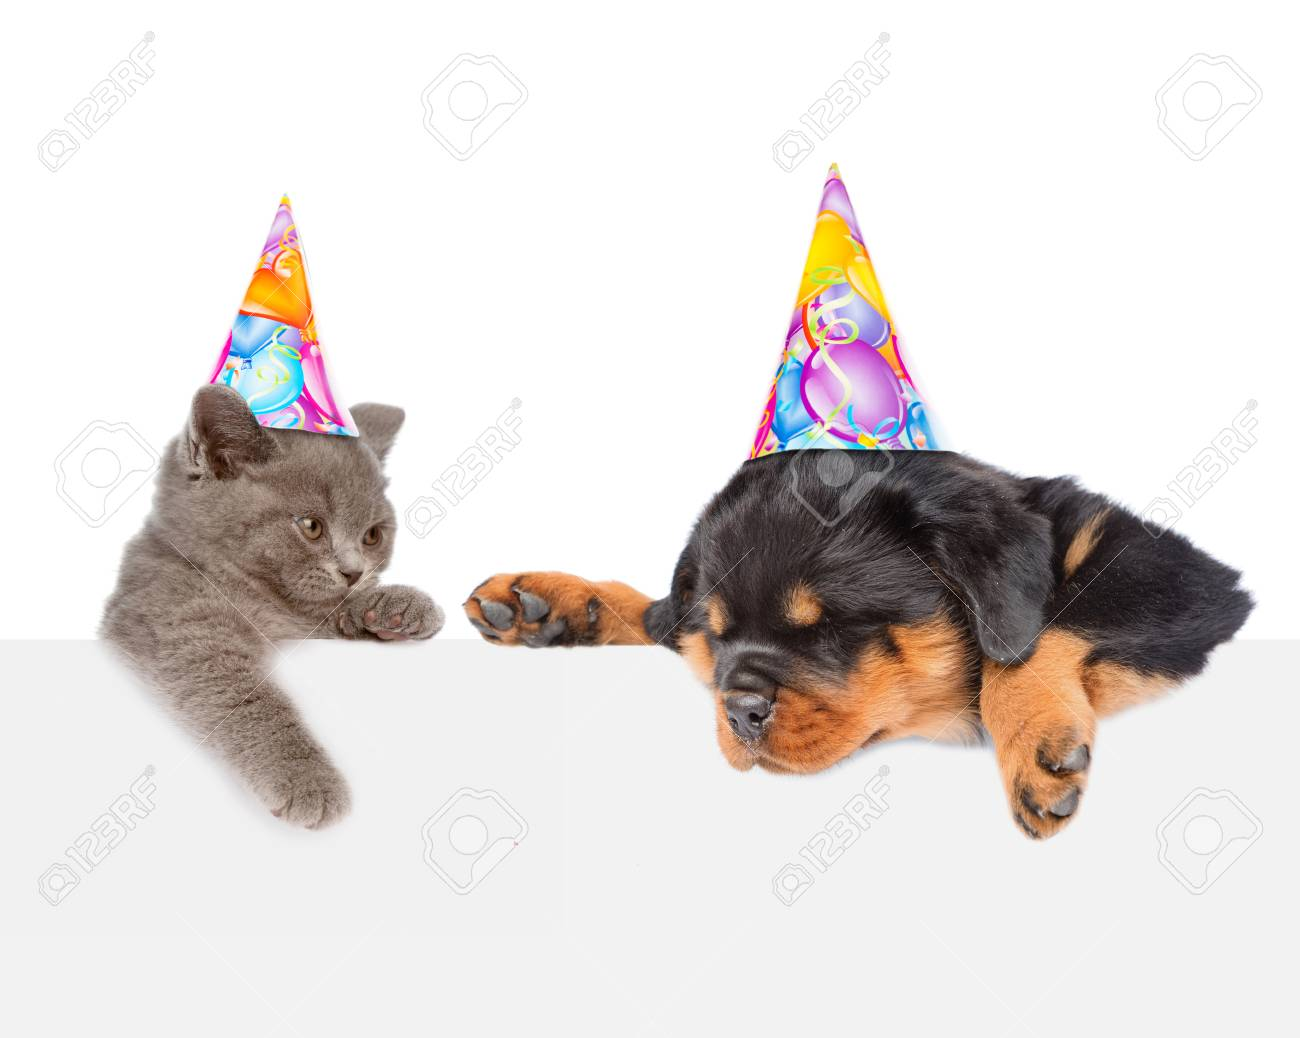 Cat And Dog In Birthday Hats Peeking From Behind Empty Board Looking Down Isolated On